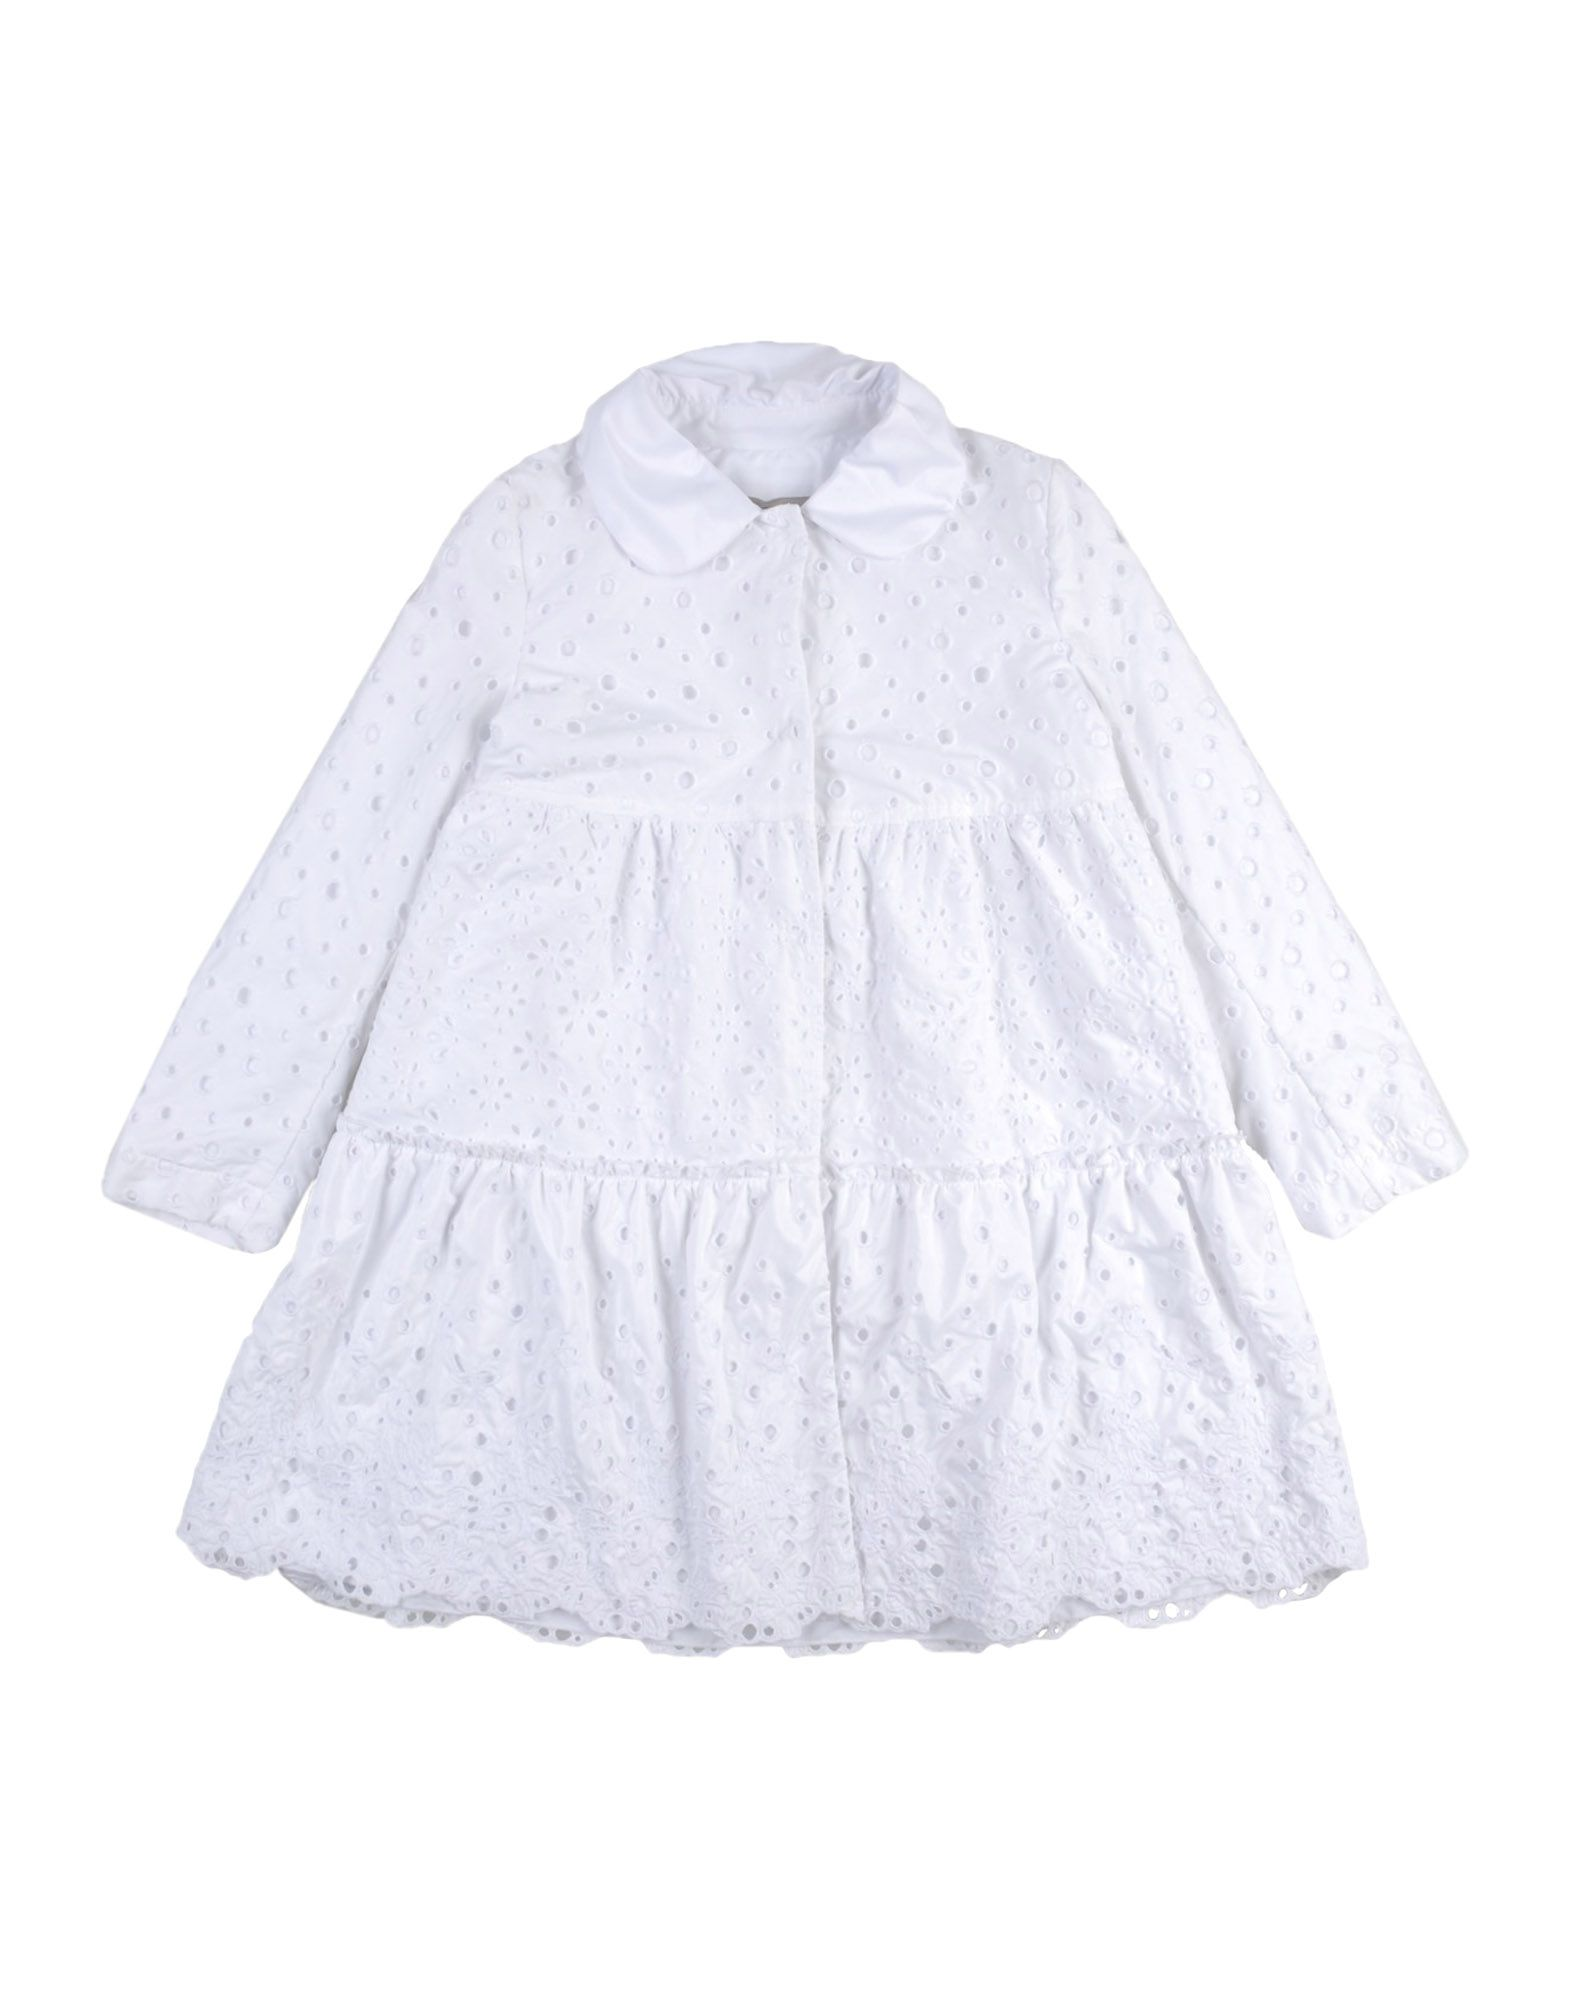 ERMANNO SCERVINO JUNIOR Coat in White